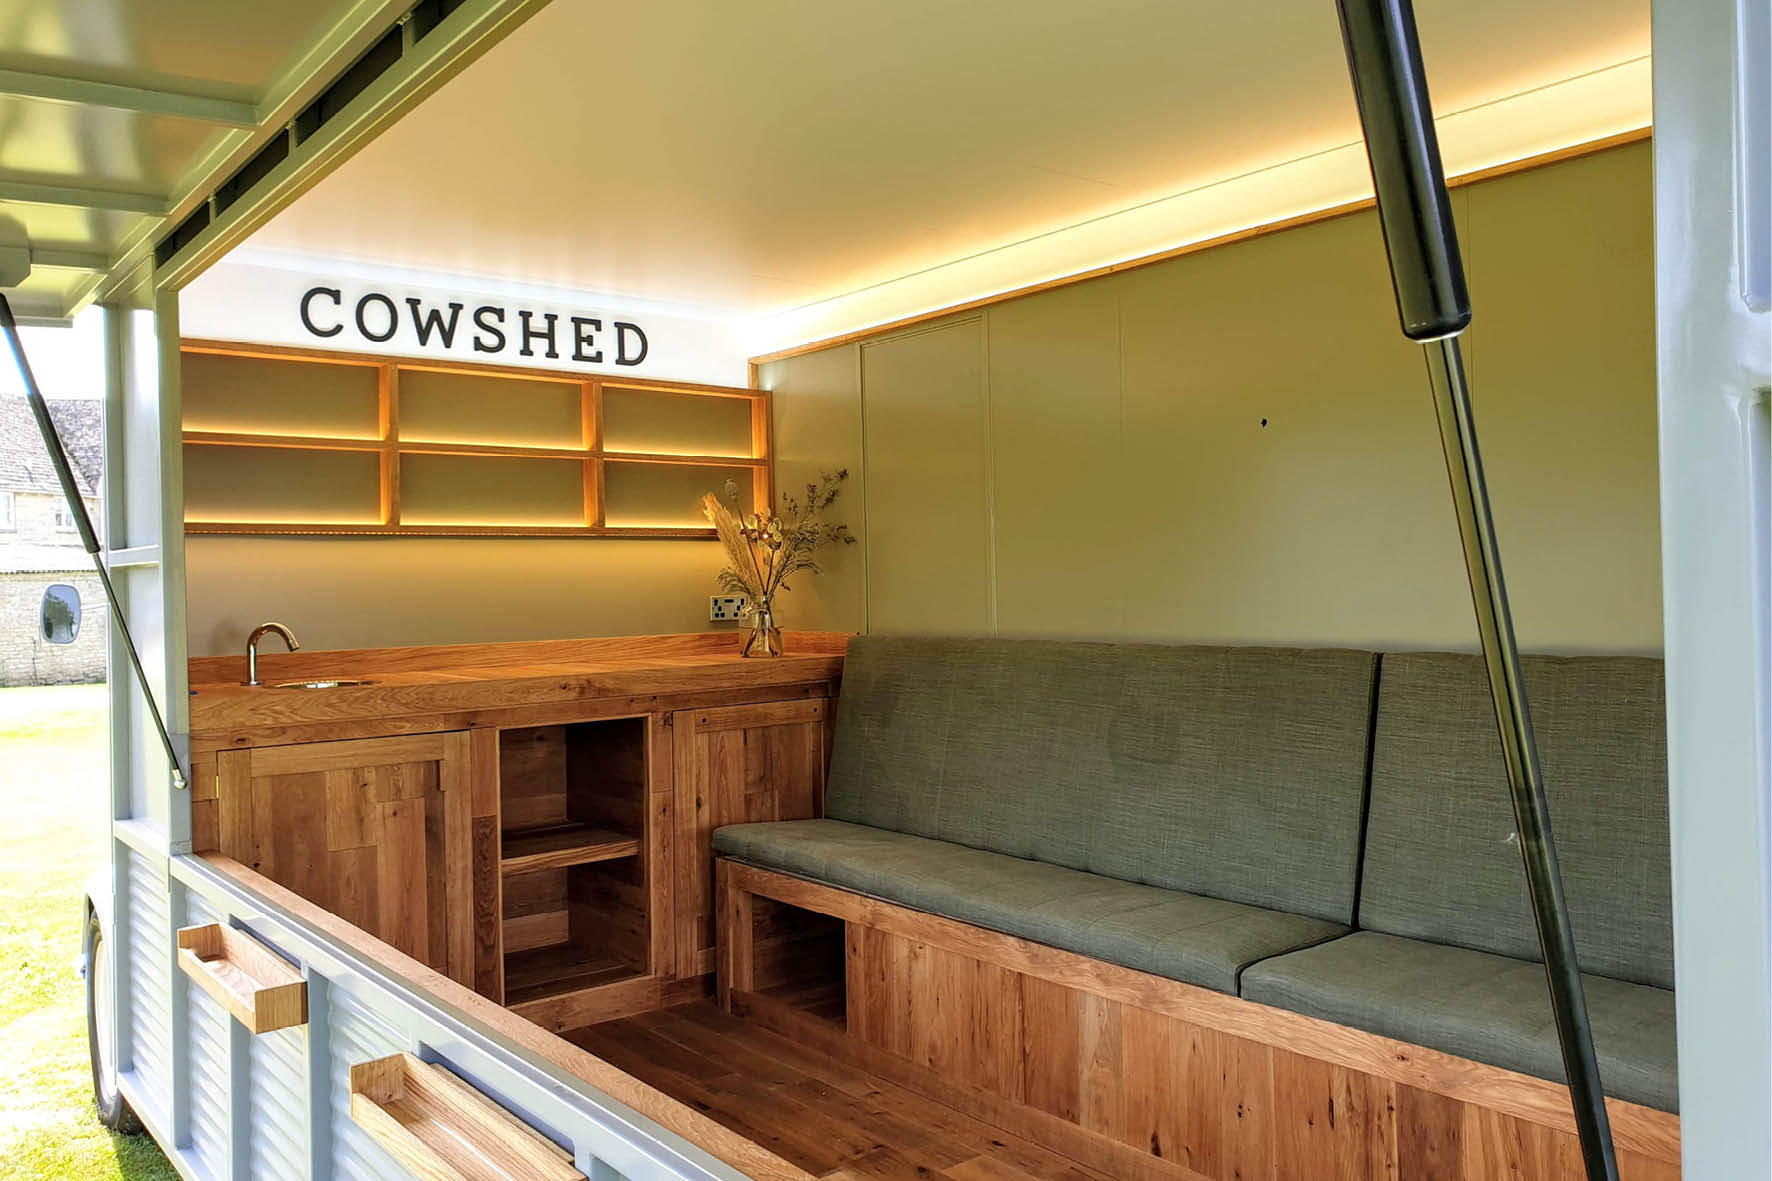 bus_business_2019_cowshed_6.jpg